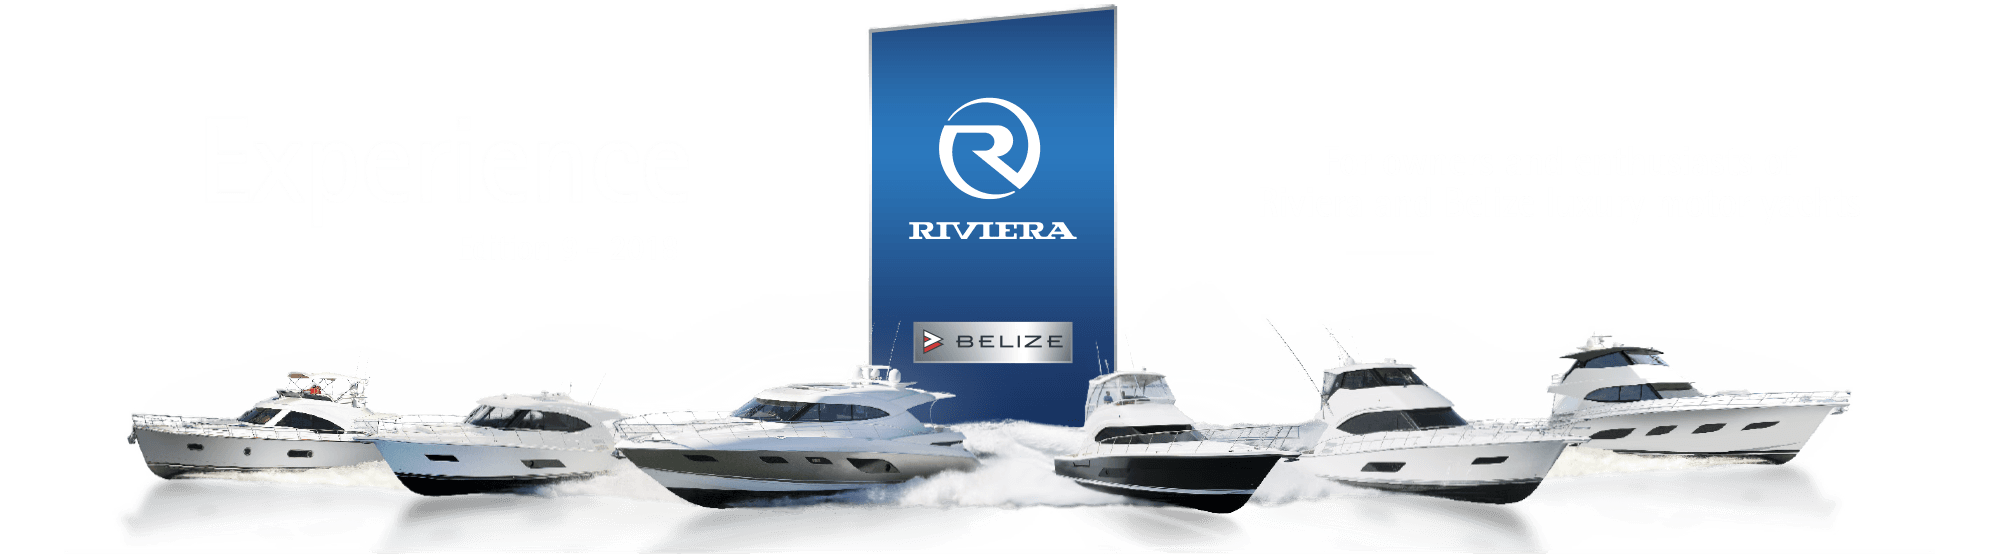 Lineup of Riviera Yachts